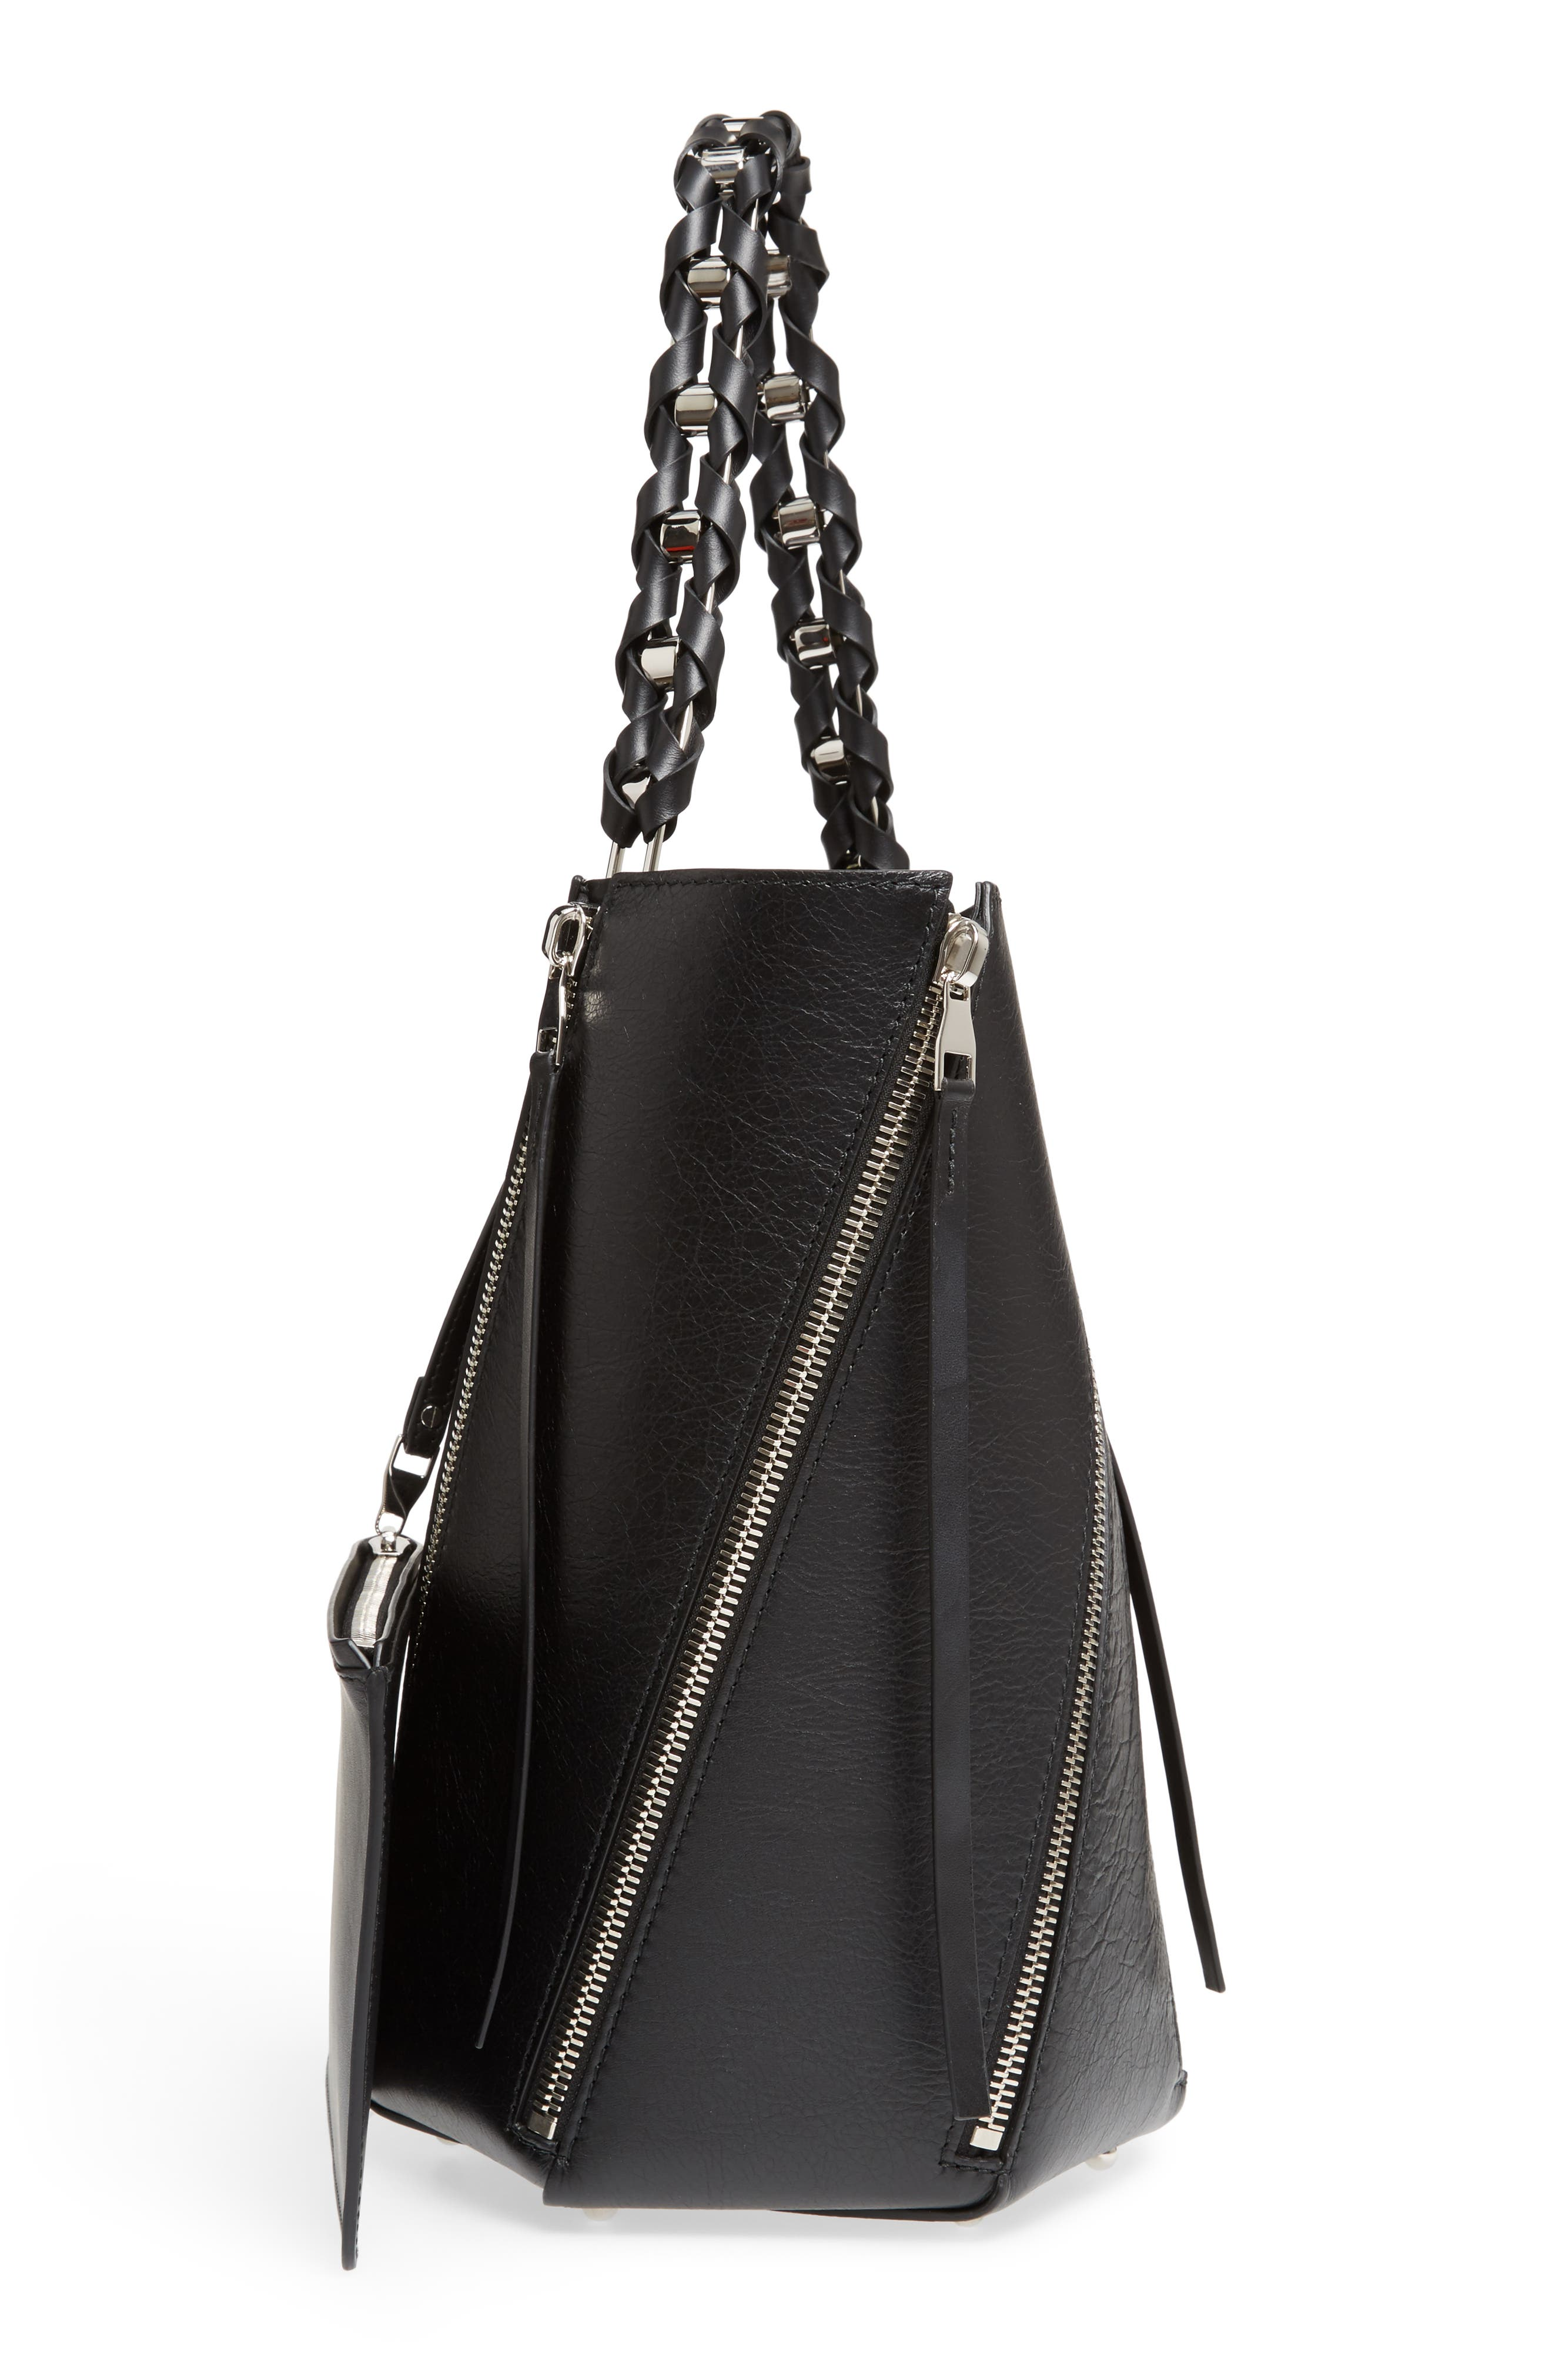 Medium Hex Zip Leather Bucket Bag,                             Alternate thumbnail 5, color,                             001